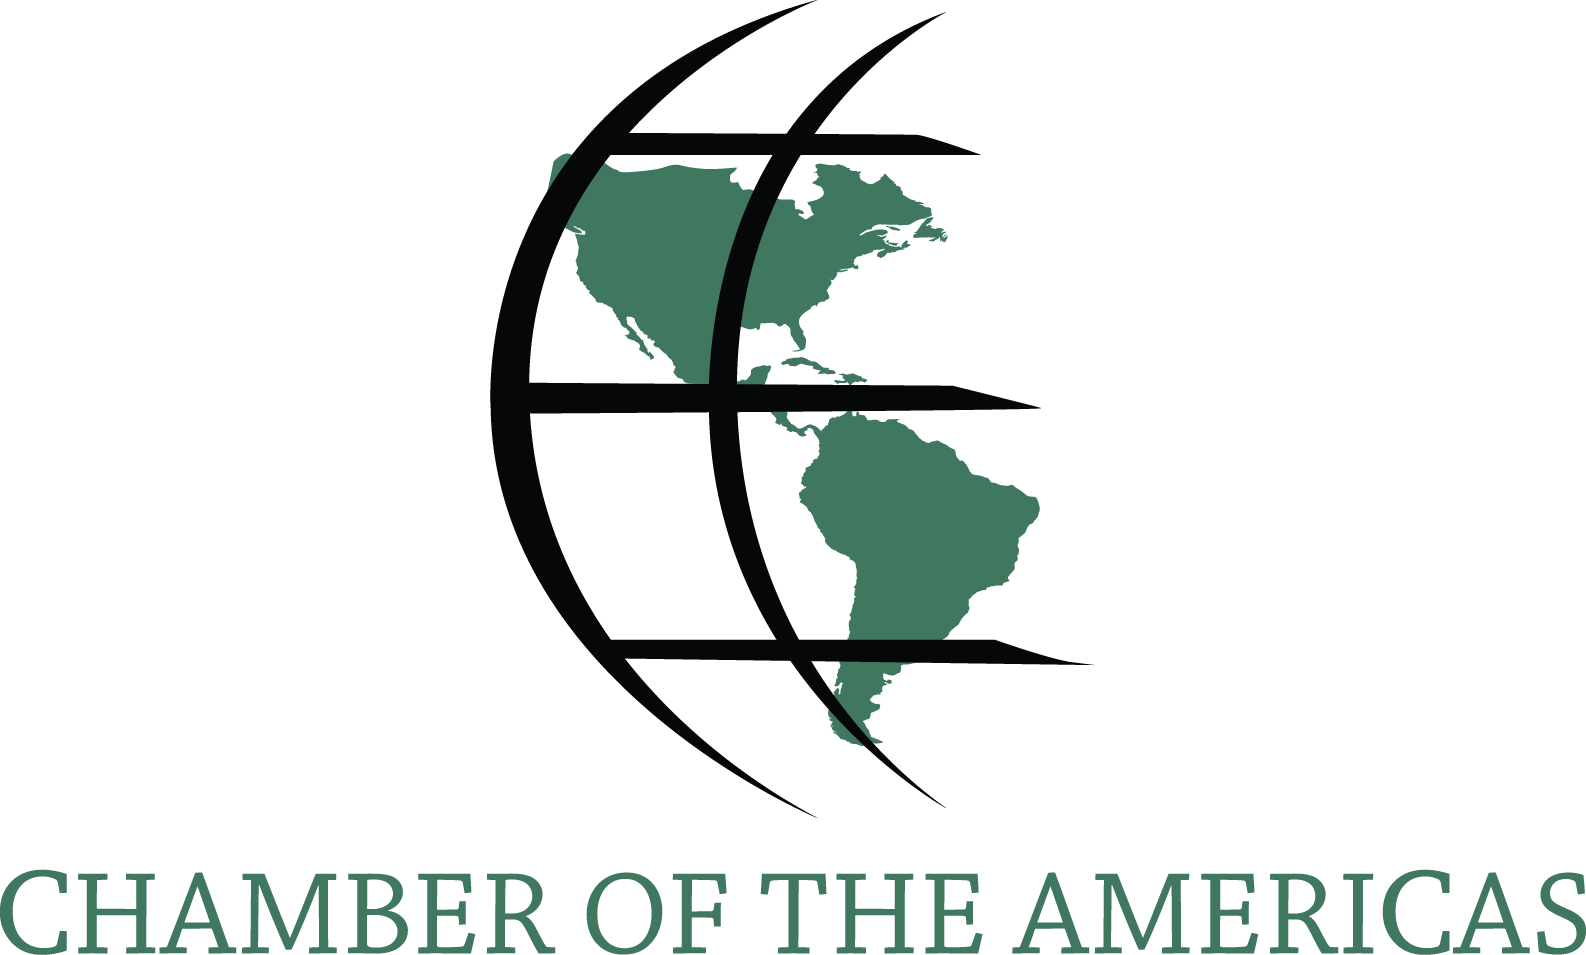 Chamber of the Americas